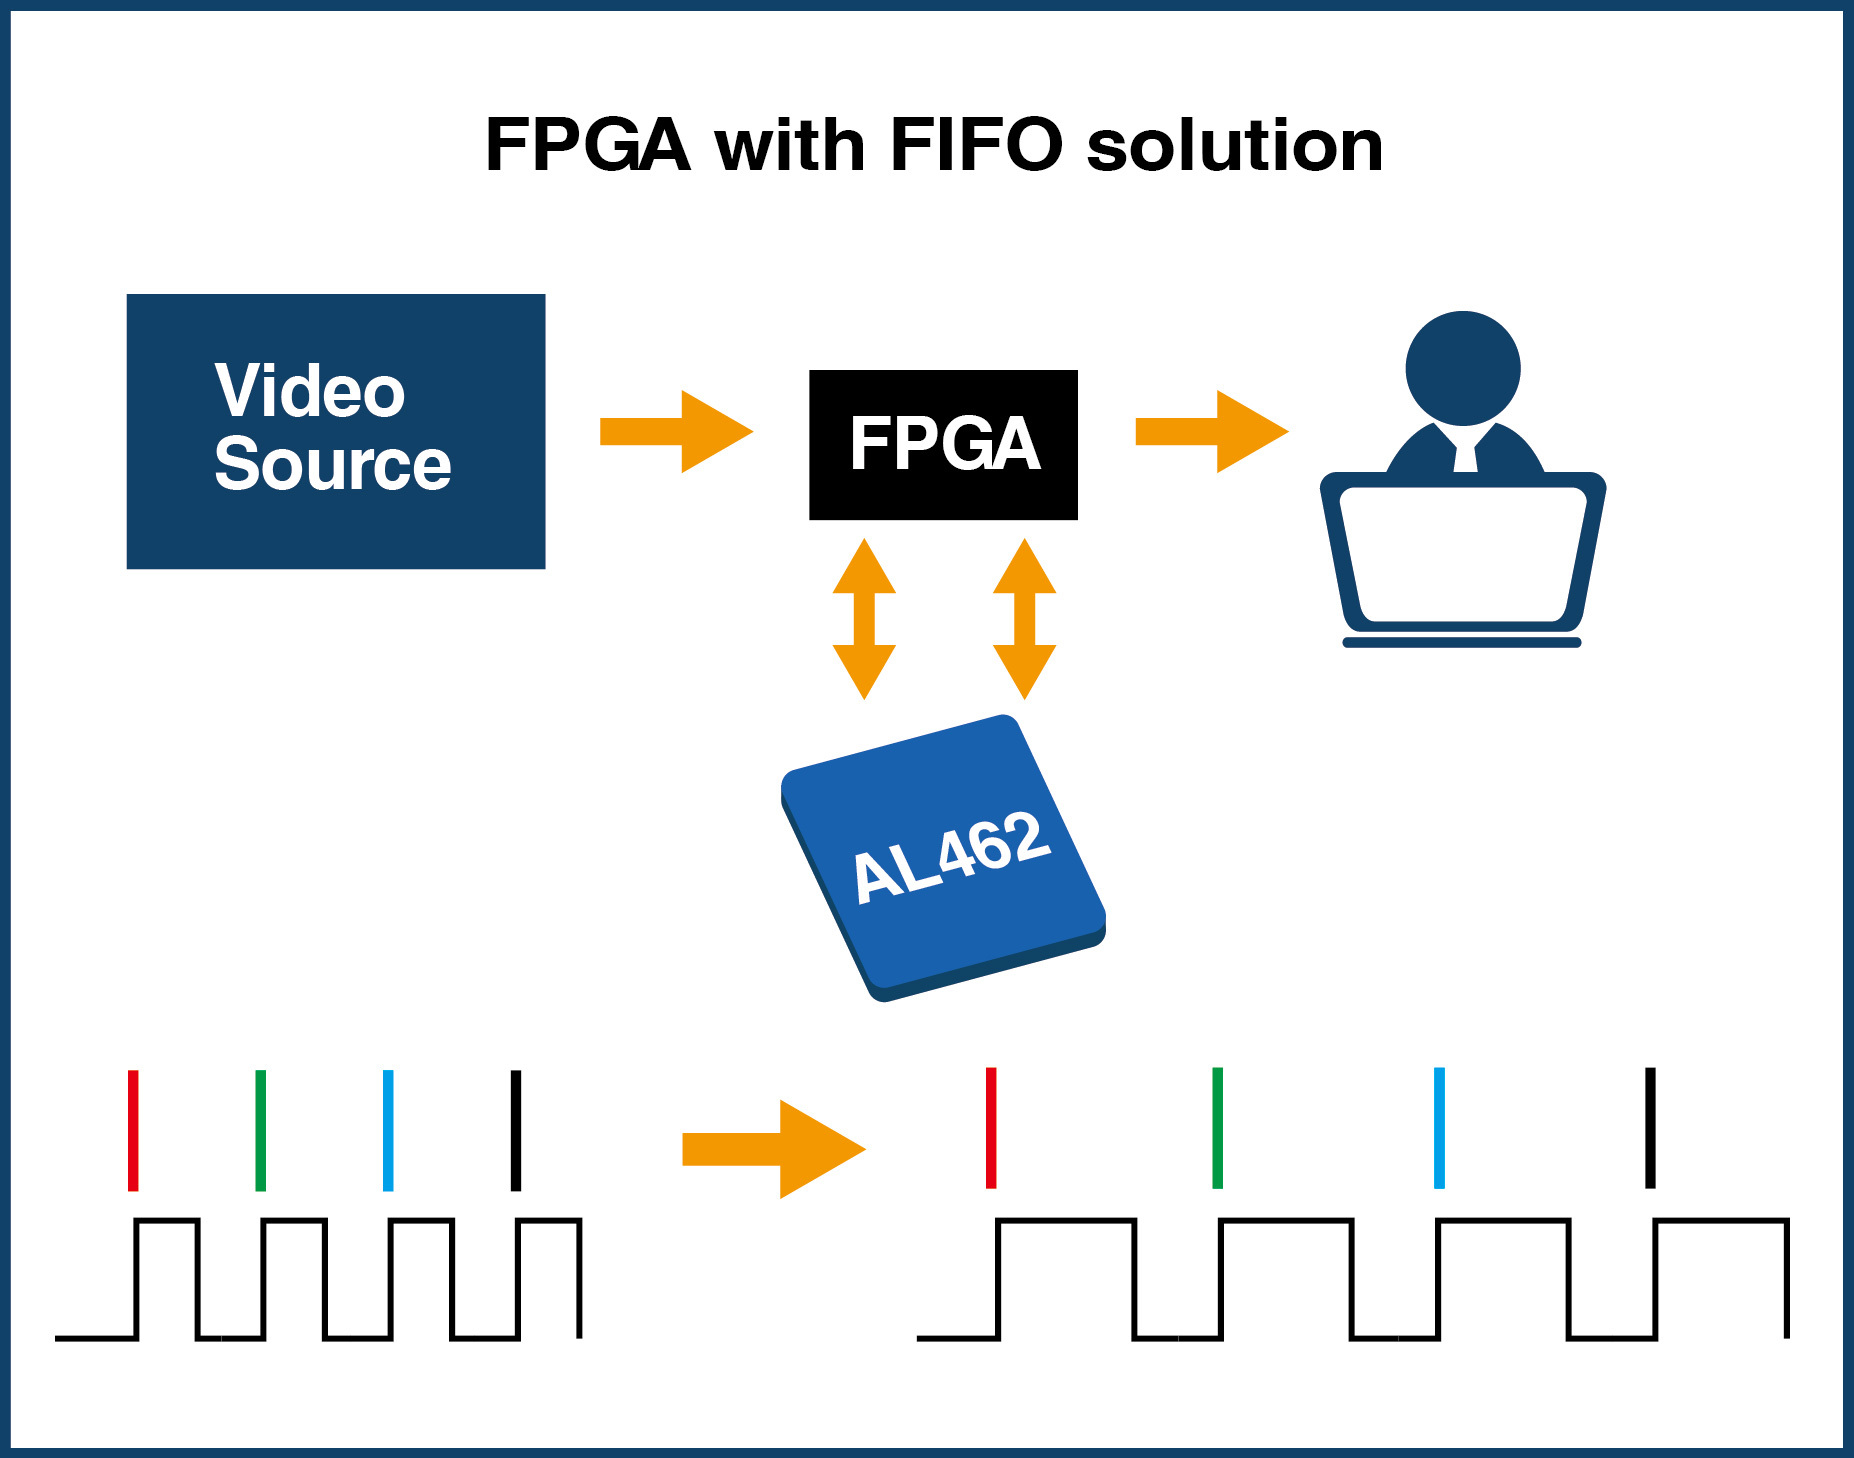 FPGA with FIFO solution